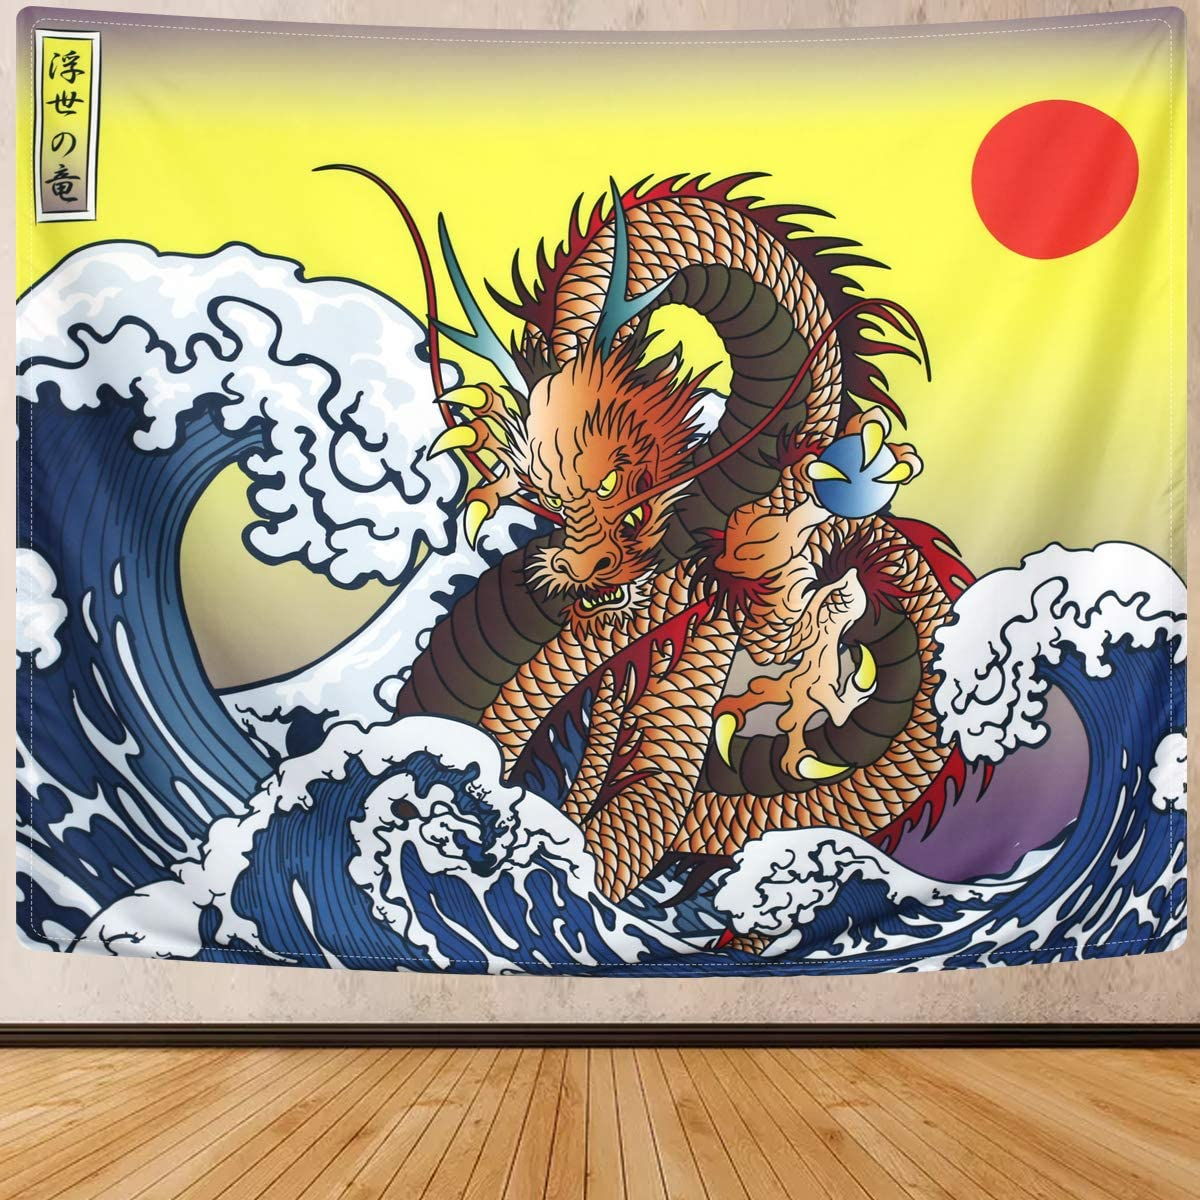 SENYYI Japanese Ukiyo-e Tapestry Wall Hanging Great Wave Kanagawa Tapestry Ocean Sunset Tapestry 3D Dragon Home Decor for Room 70.9 x 92.5 inches